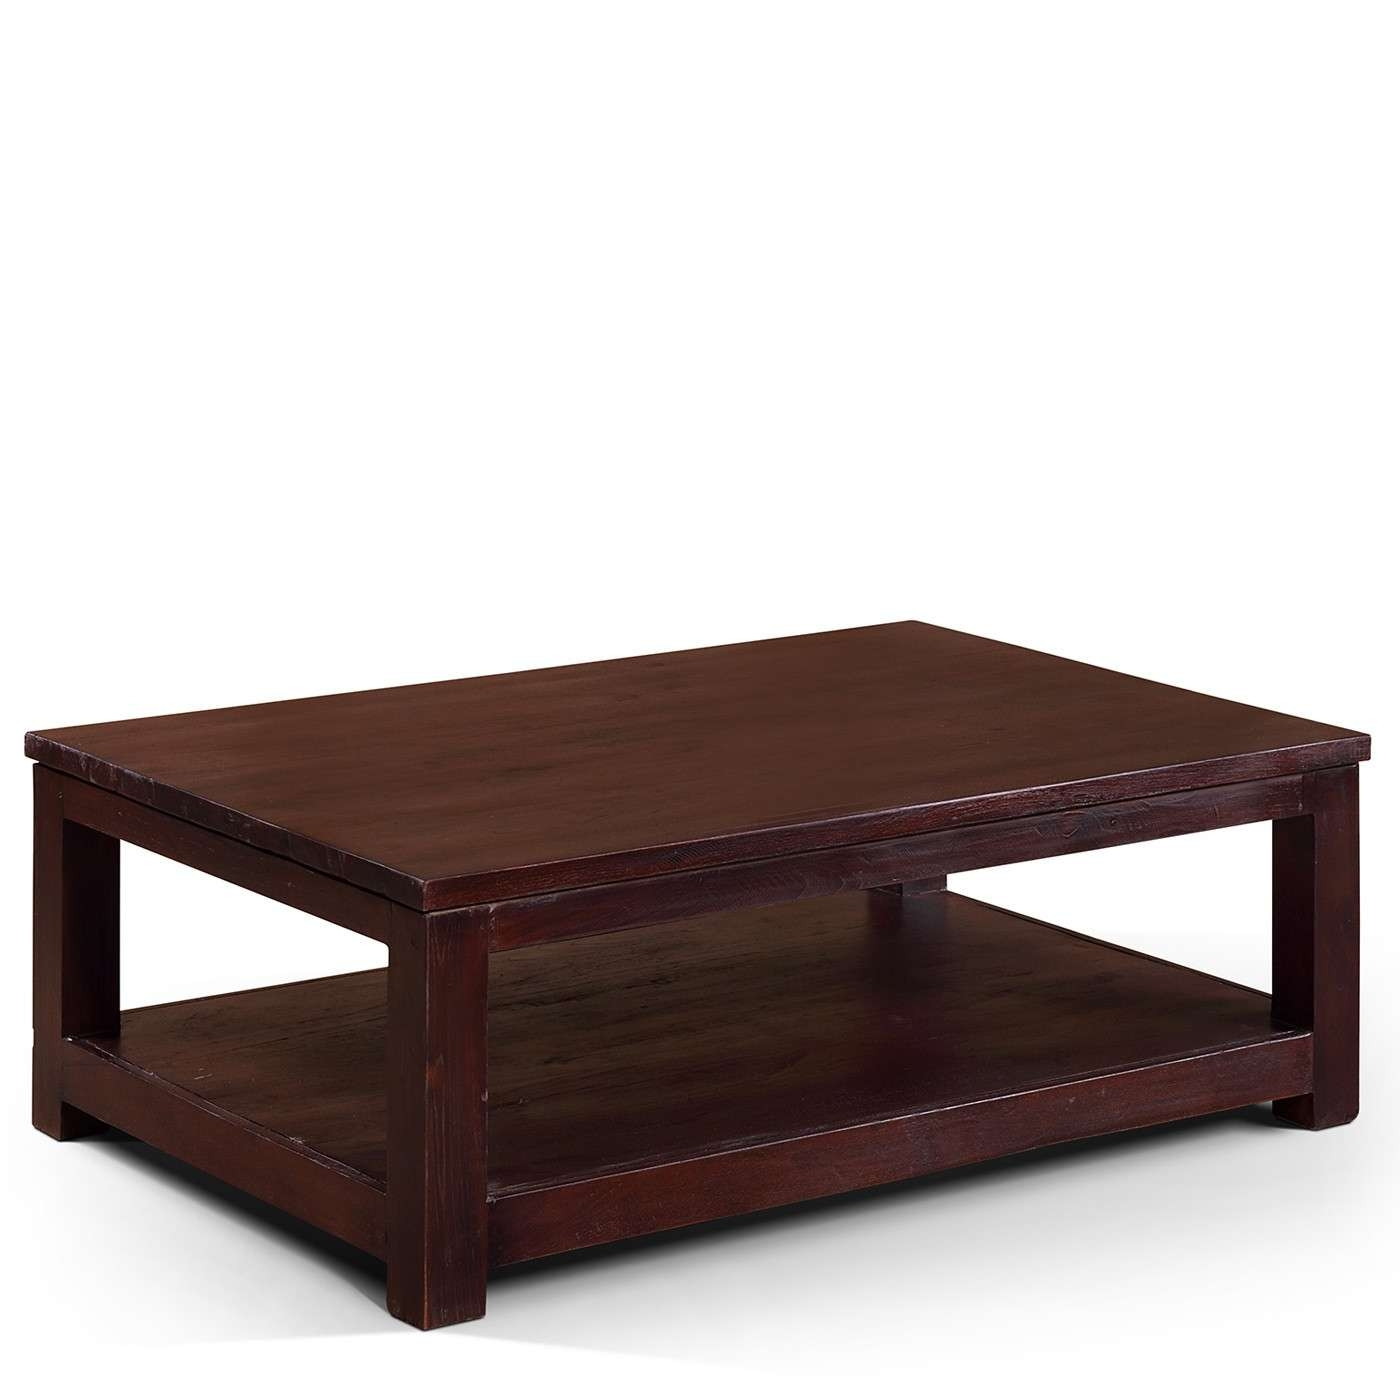 Cube Coffee Table – Raft Furniture, London Pertaining To Most Recently Released Dark Coffee Tables (View 9 of 20)